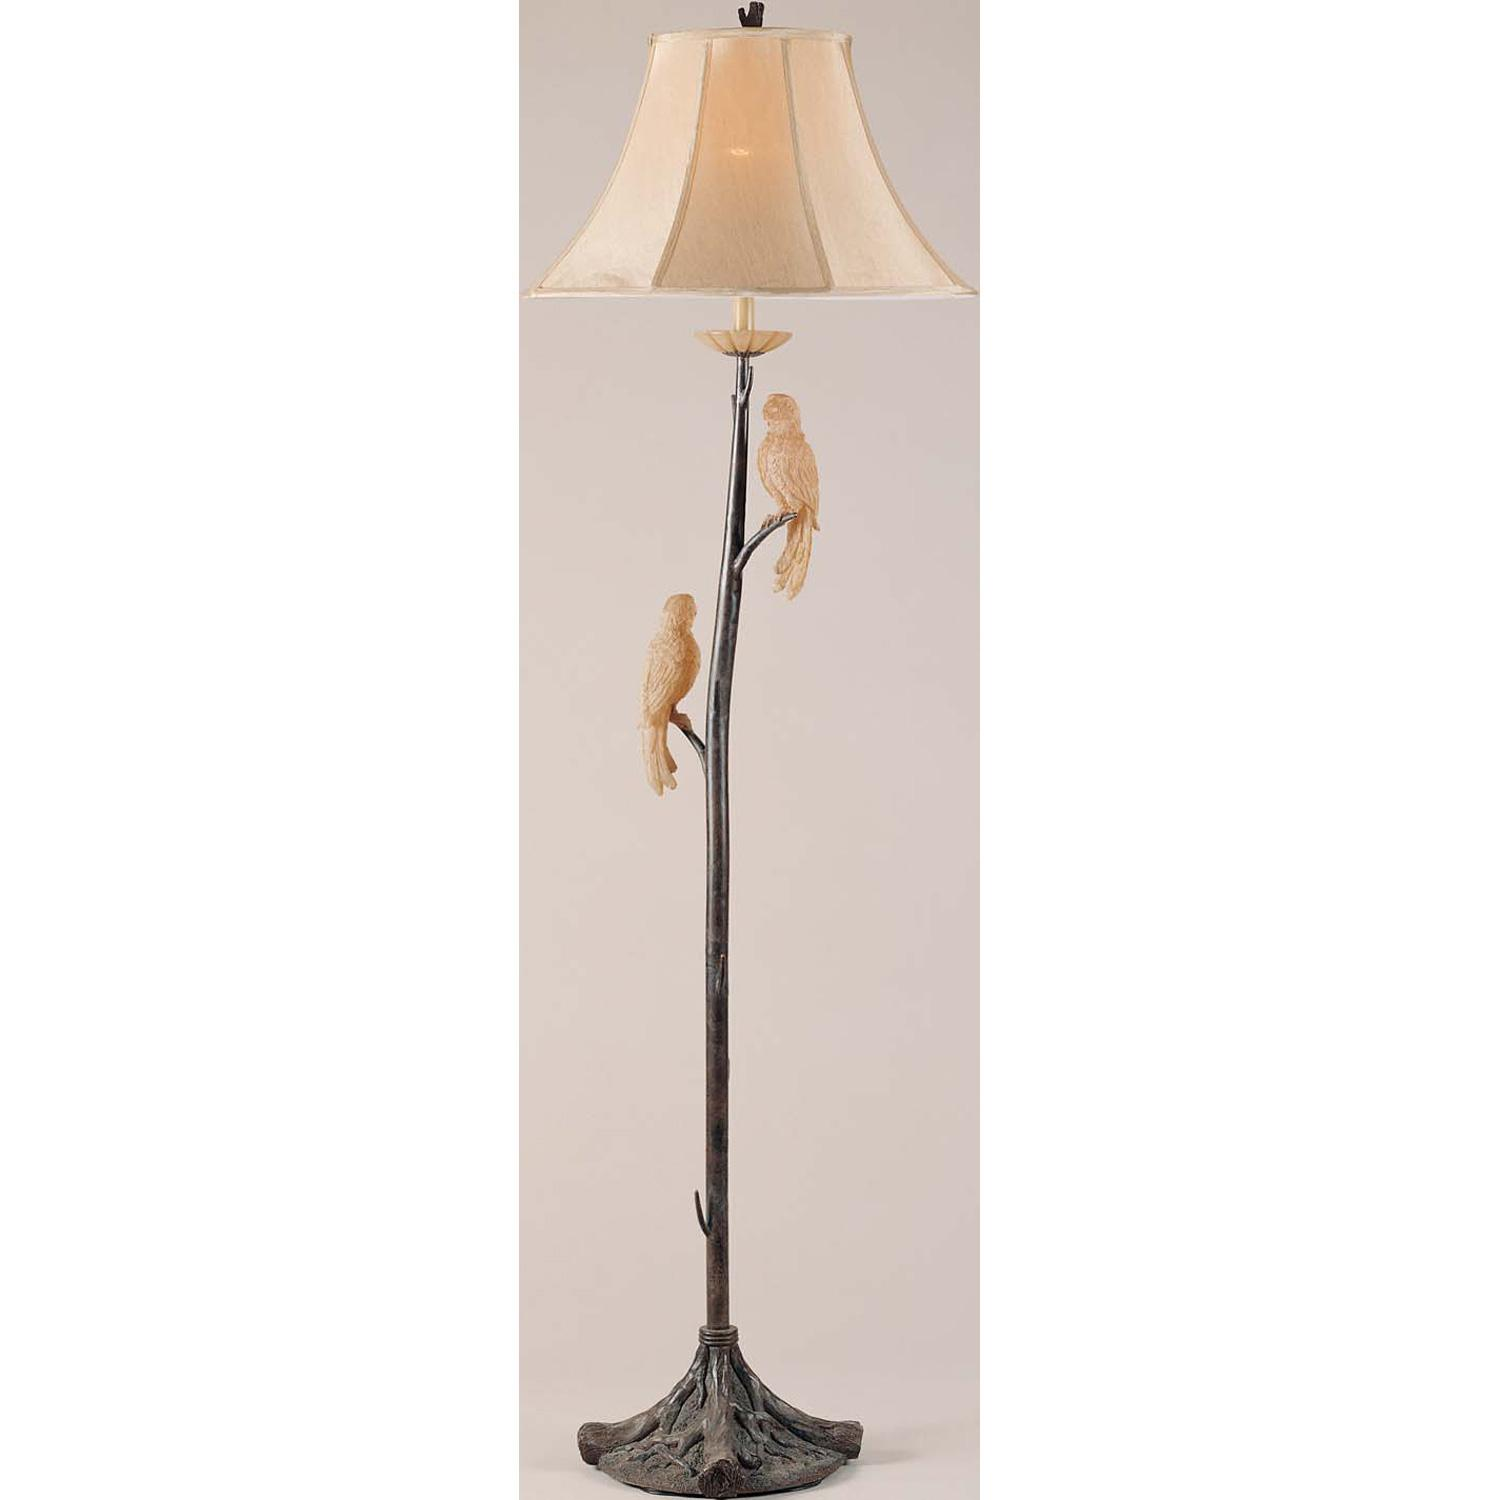 Charming Driftwood Floor Lamp With Birds Ornament For Home Furniture Ideas